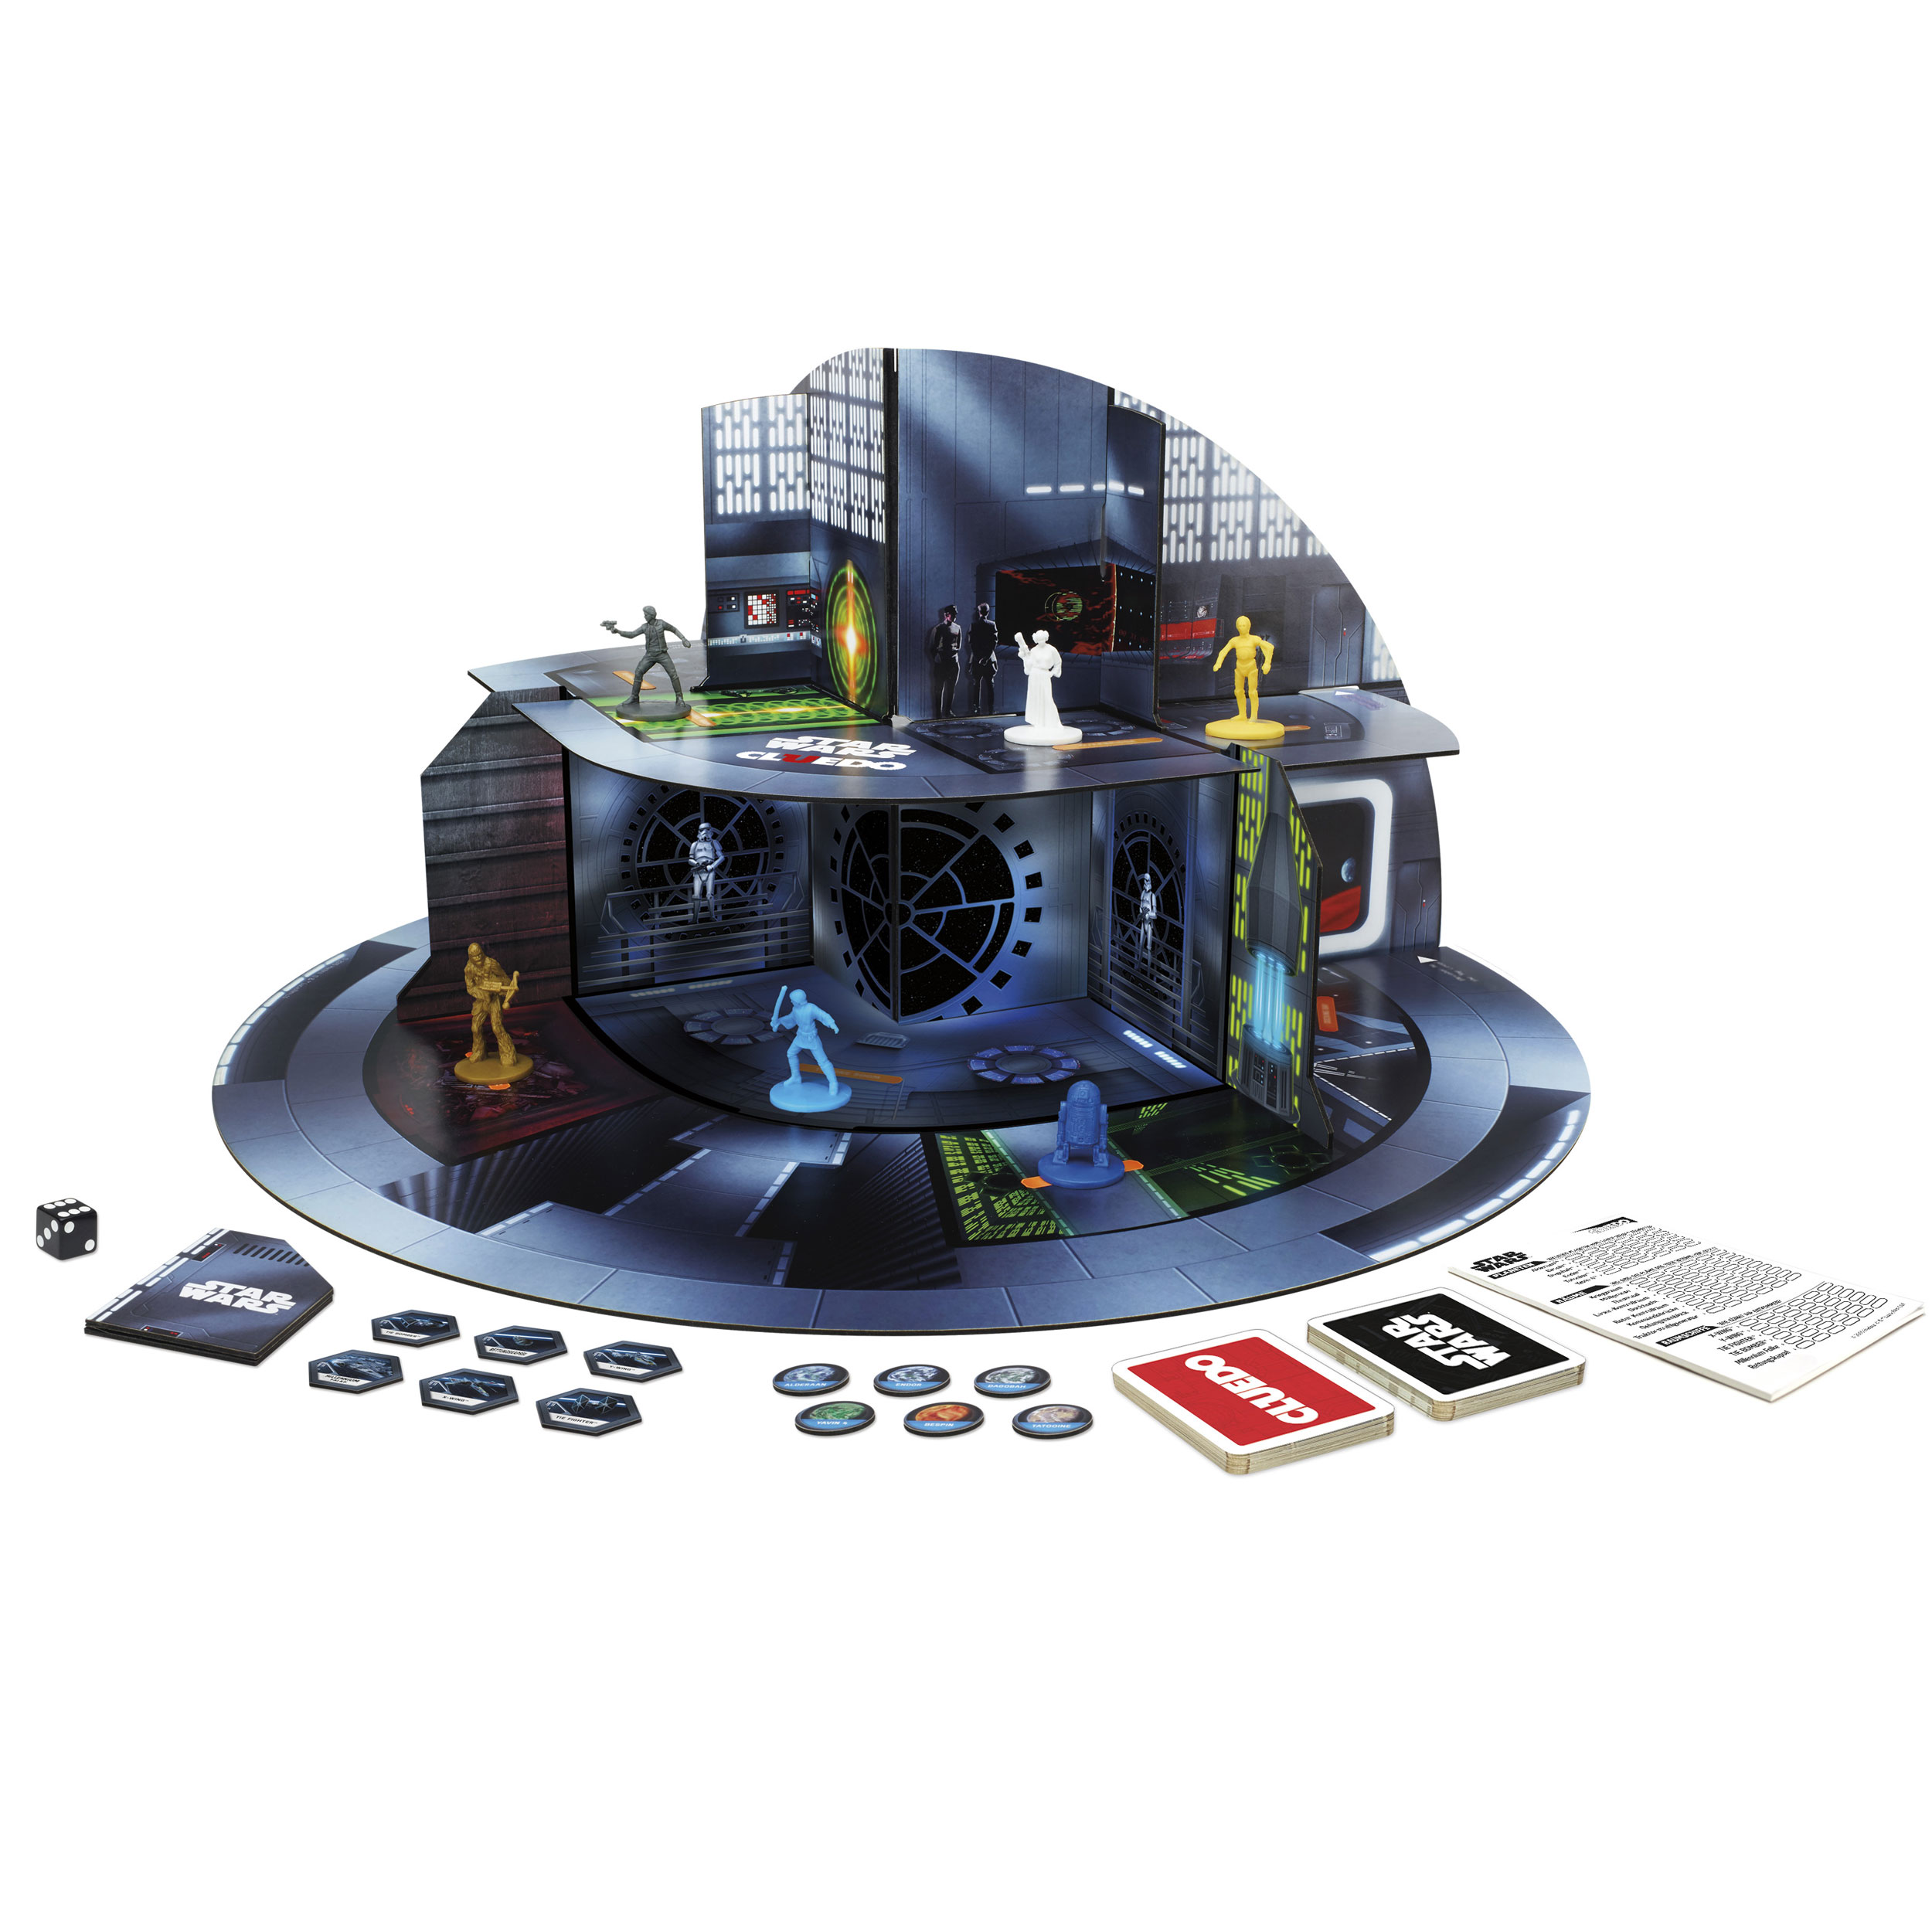 Cluedo Anime: Star Wars Board Game Cluedo *German Version*